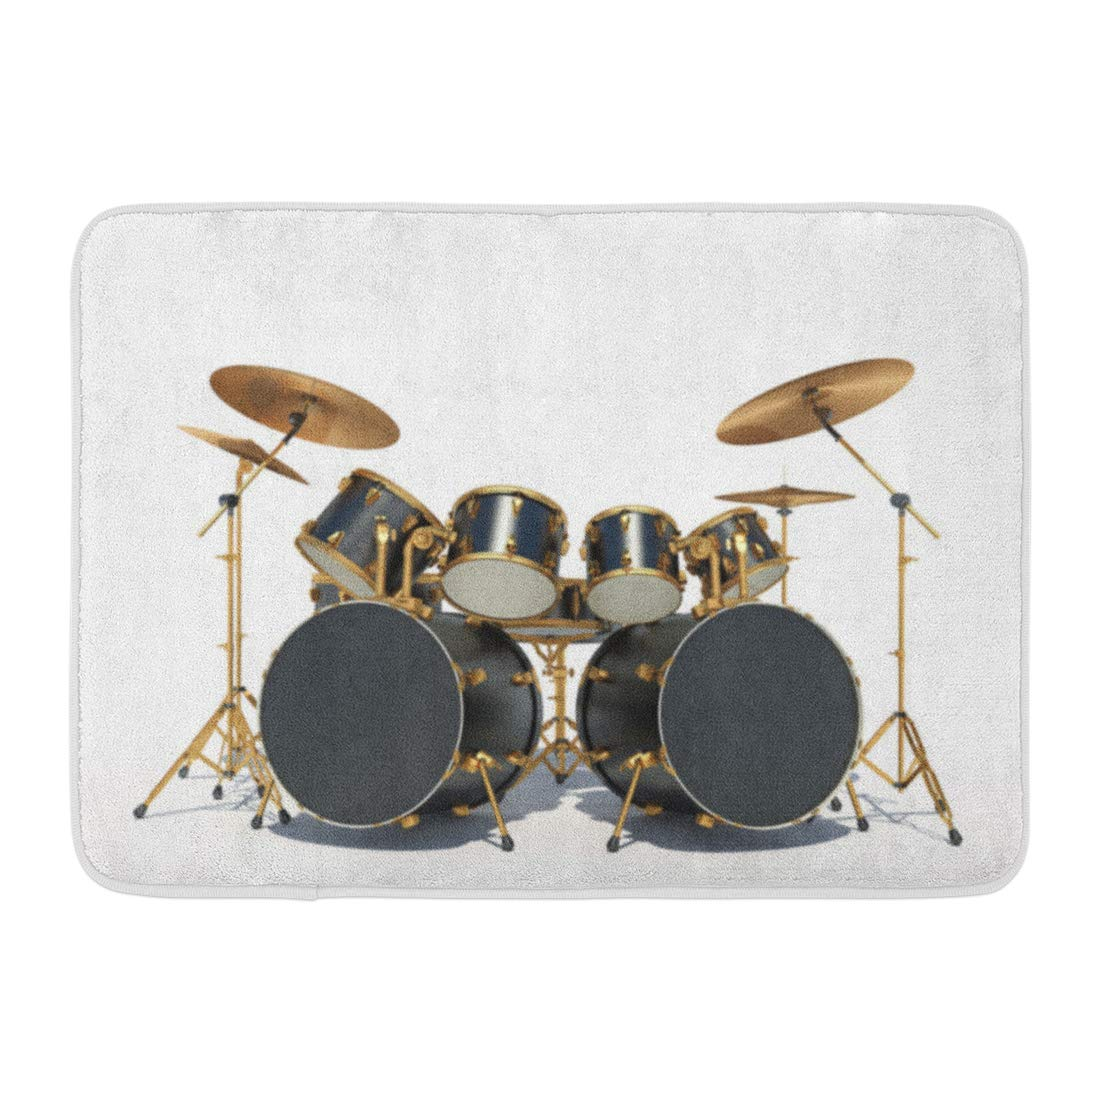 GODPOK Beat Black Bass Steampunk Style Drum Kit White 3D Render Silver Battery Bronze Rug Doormat Bath Mat 23.6x15.7 inch